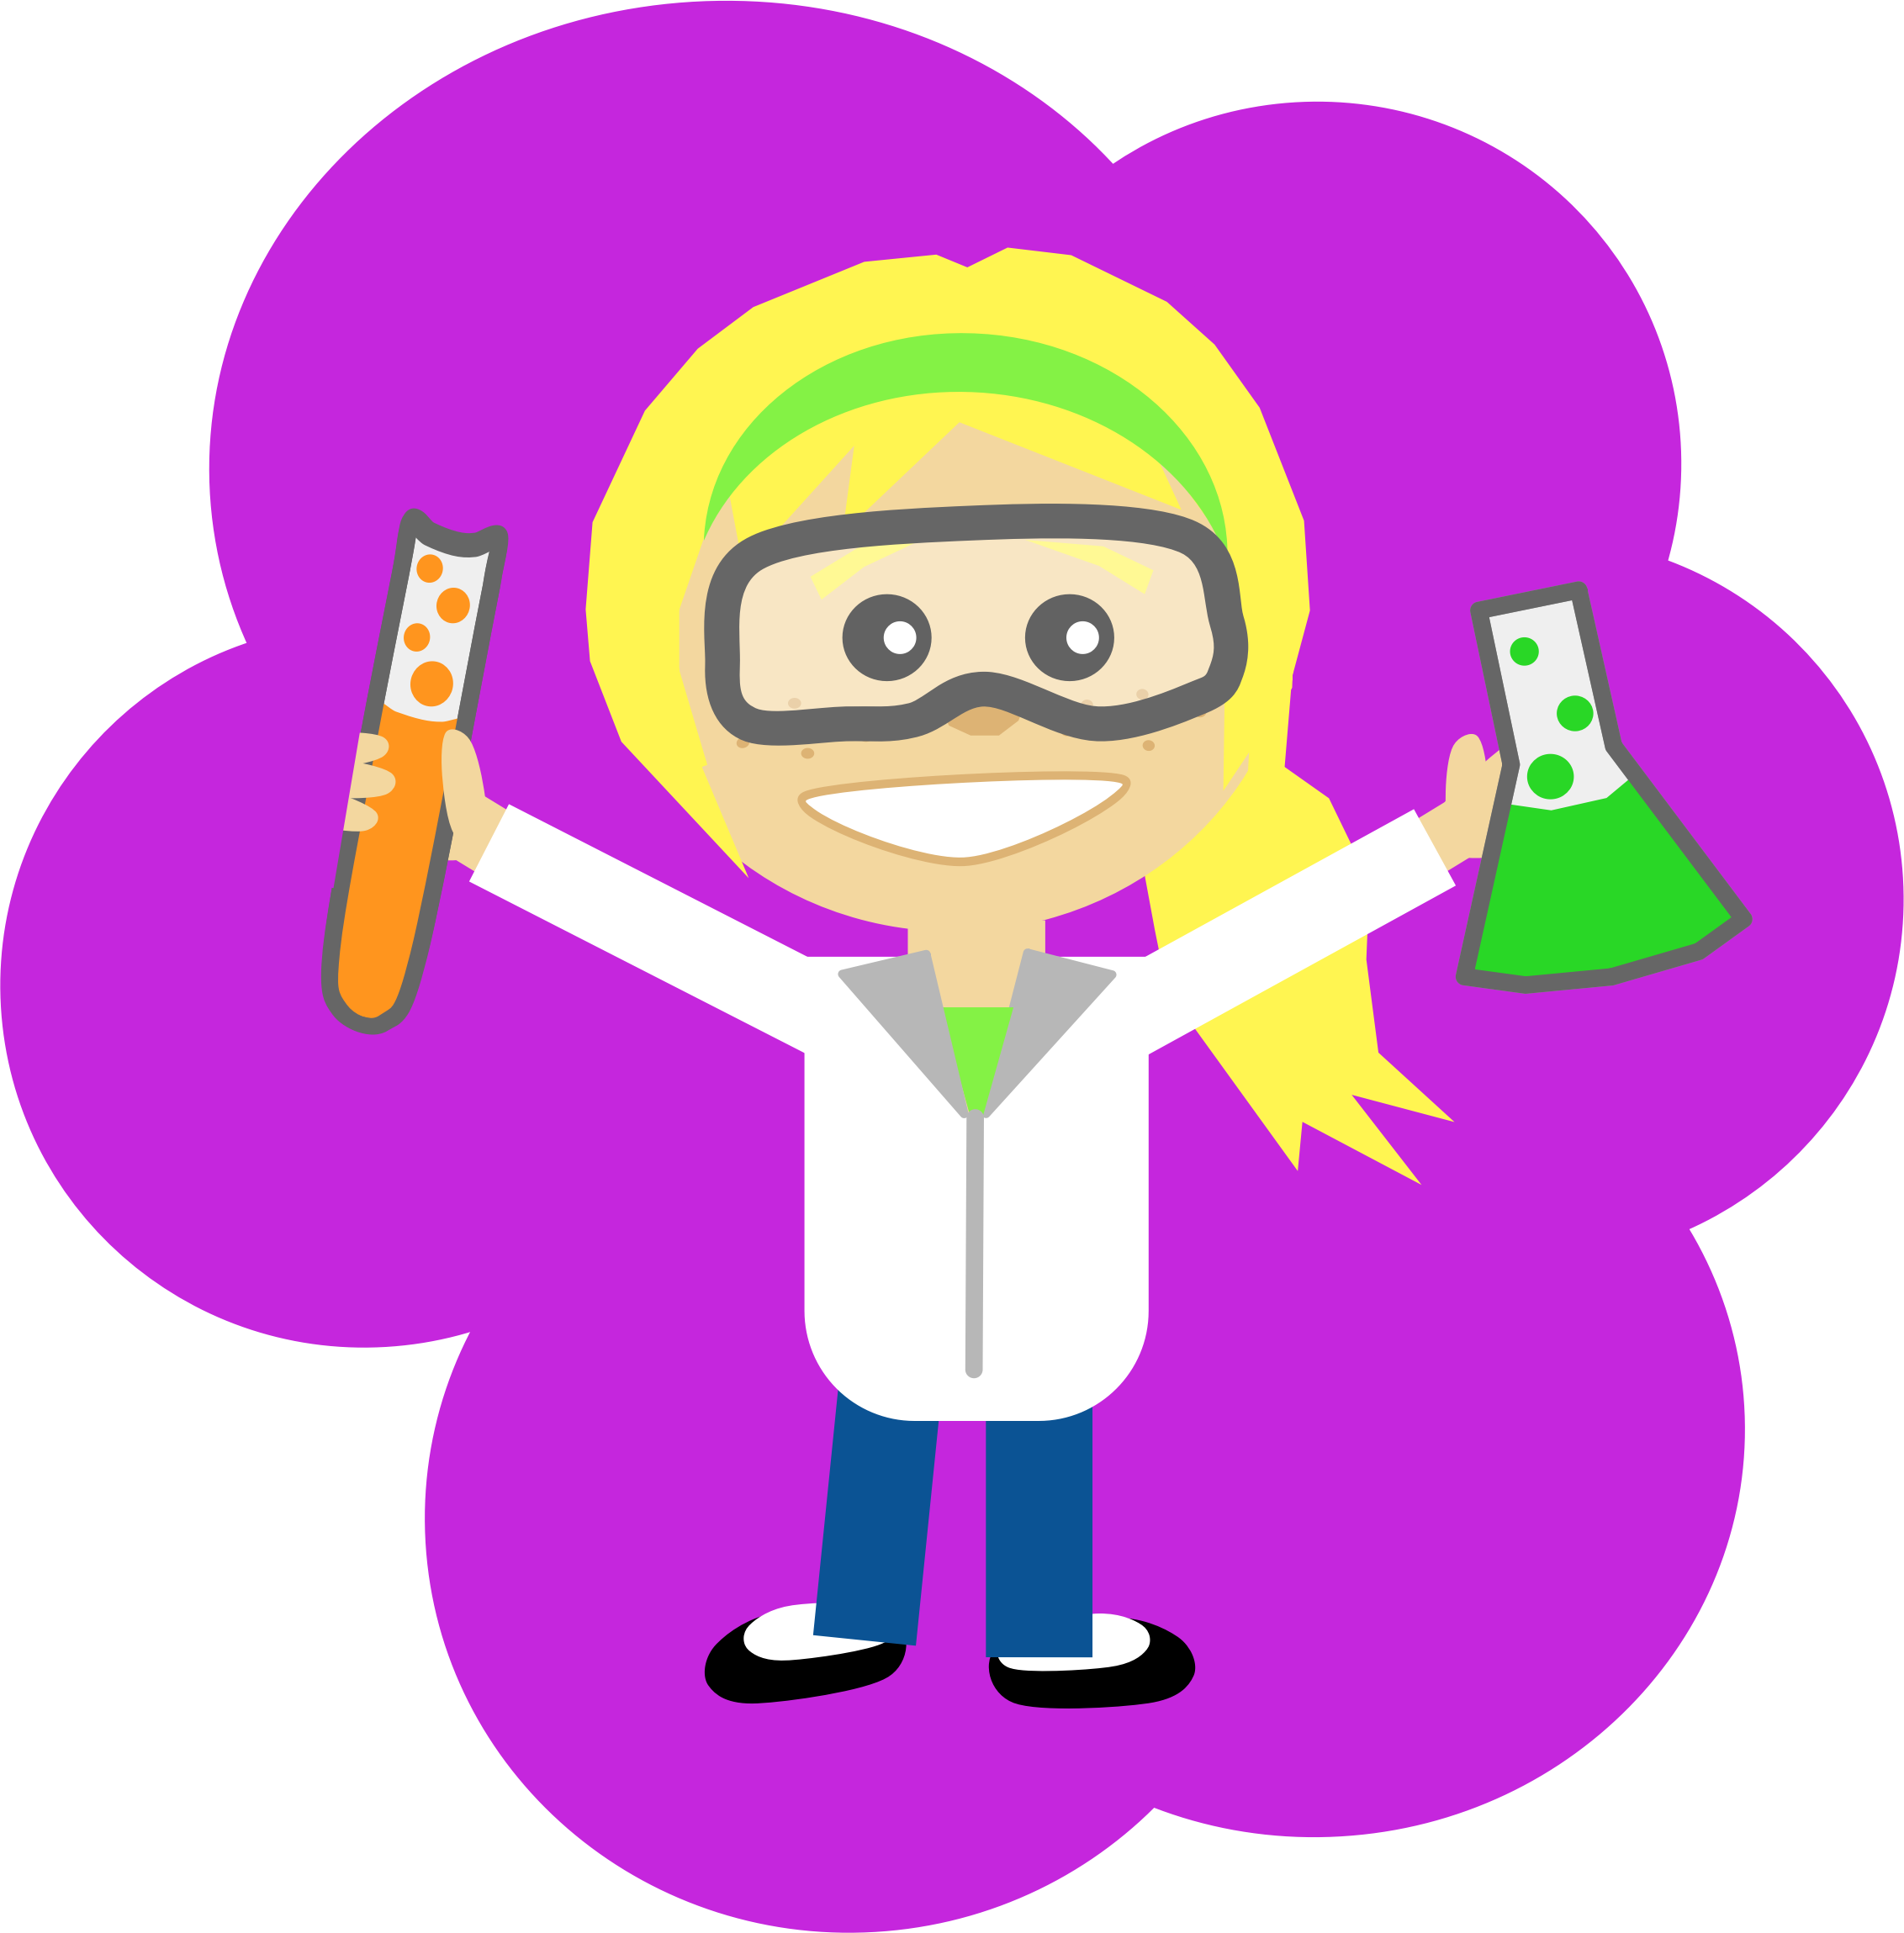 clipart transparent library Science clipart. Girl with panda free.